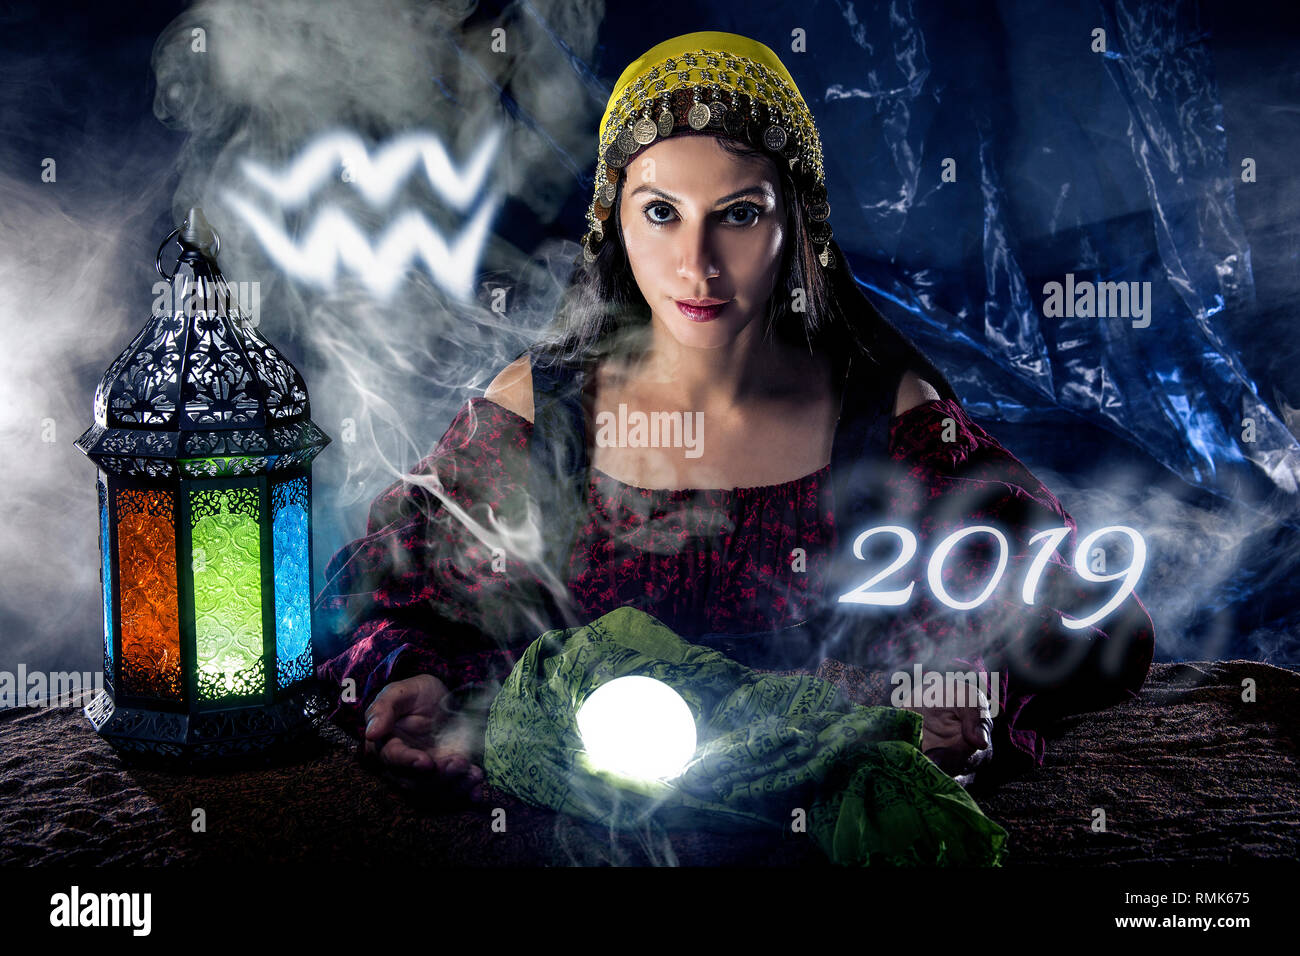 Psychic or fortune teller with crystal ball and horoscope zodiac sign of Aquarius - Stock Image